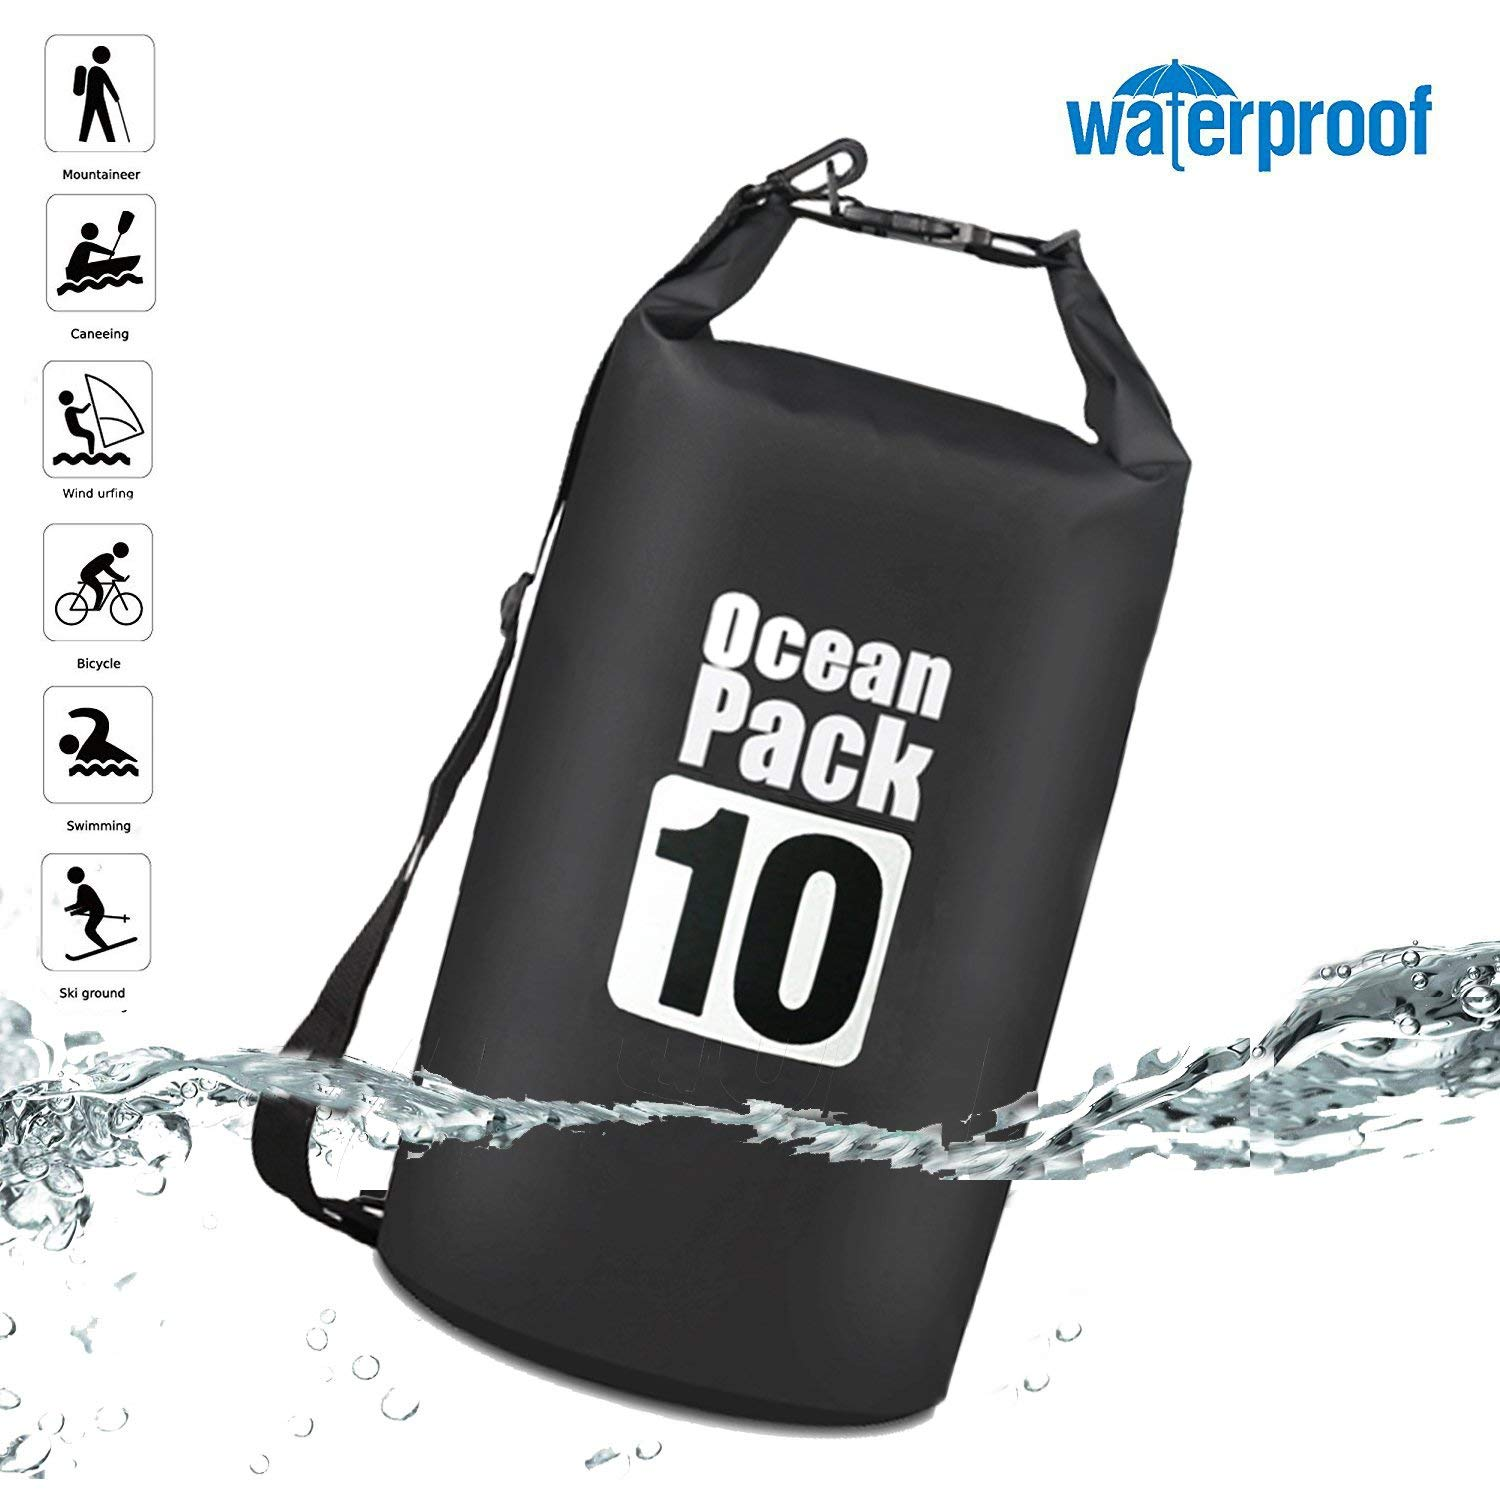 AOAKY Waterproof Dry Bag -Roll Top Dry Sack-Floating Bags for Boating, Kayaking, Rafting, Canoeing, Swimming, Fishing, Hiking, Camping, Snowboarding and Backpacking